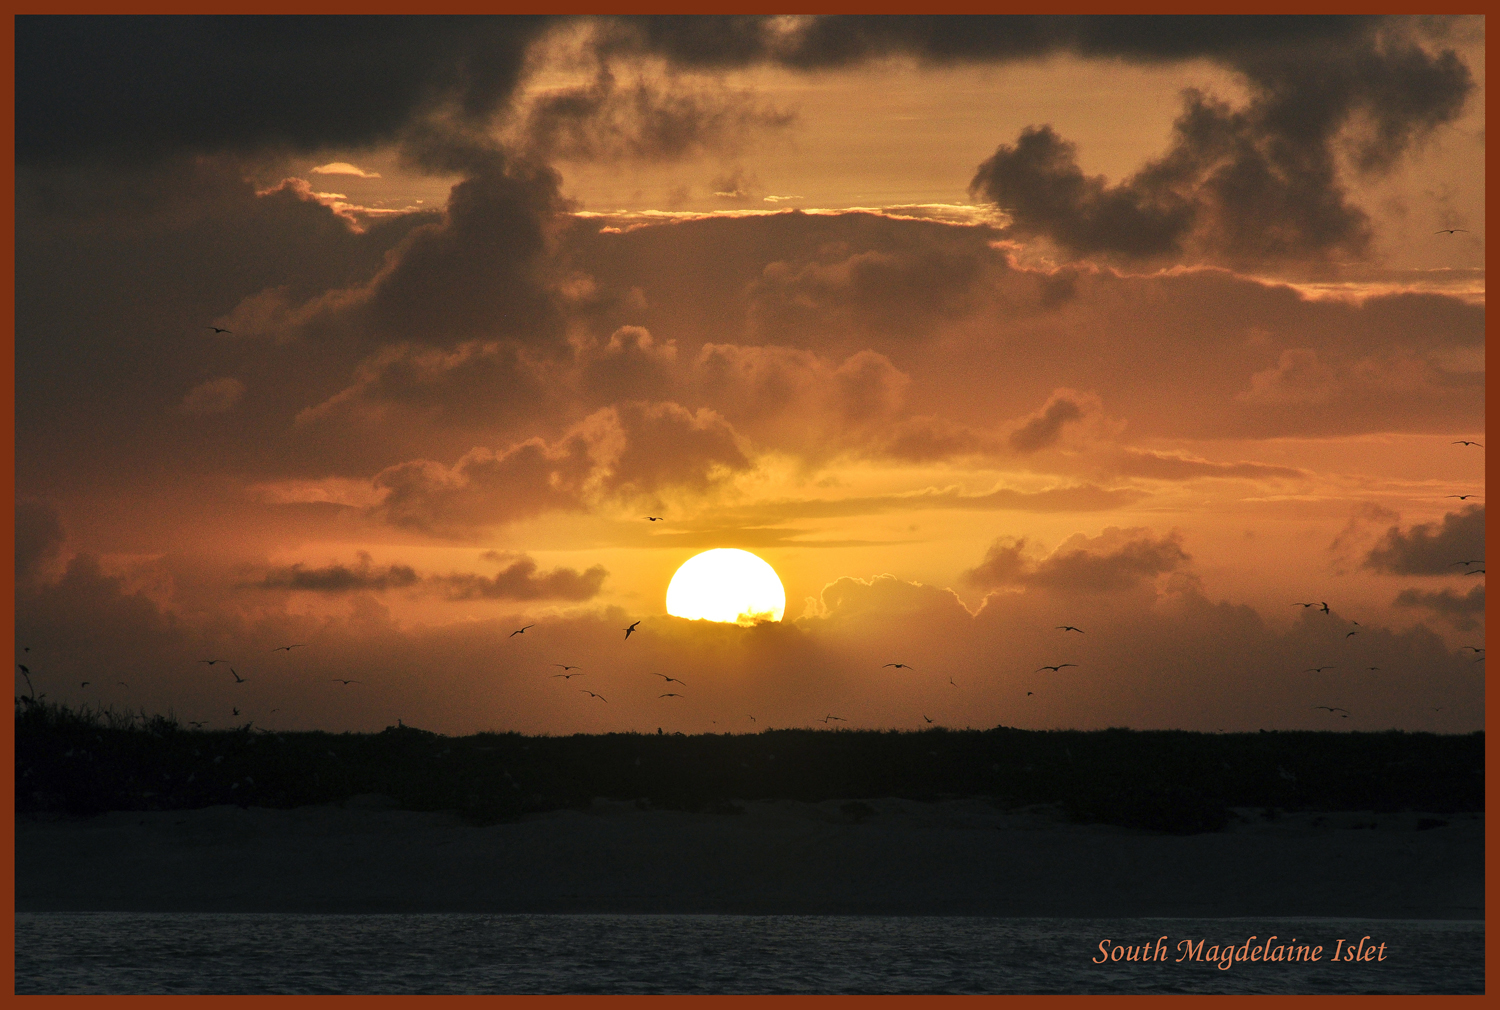 magdalaine south cay sunset